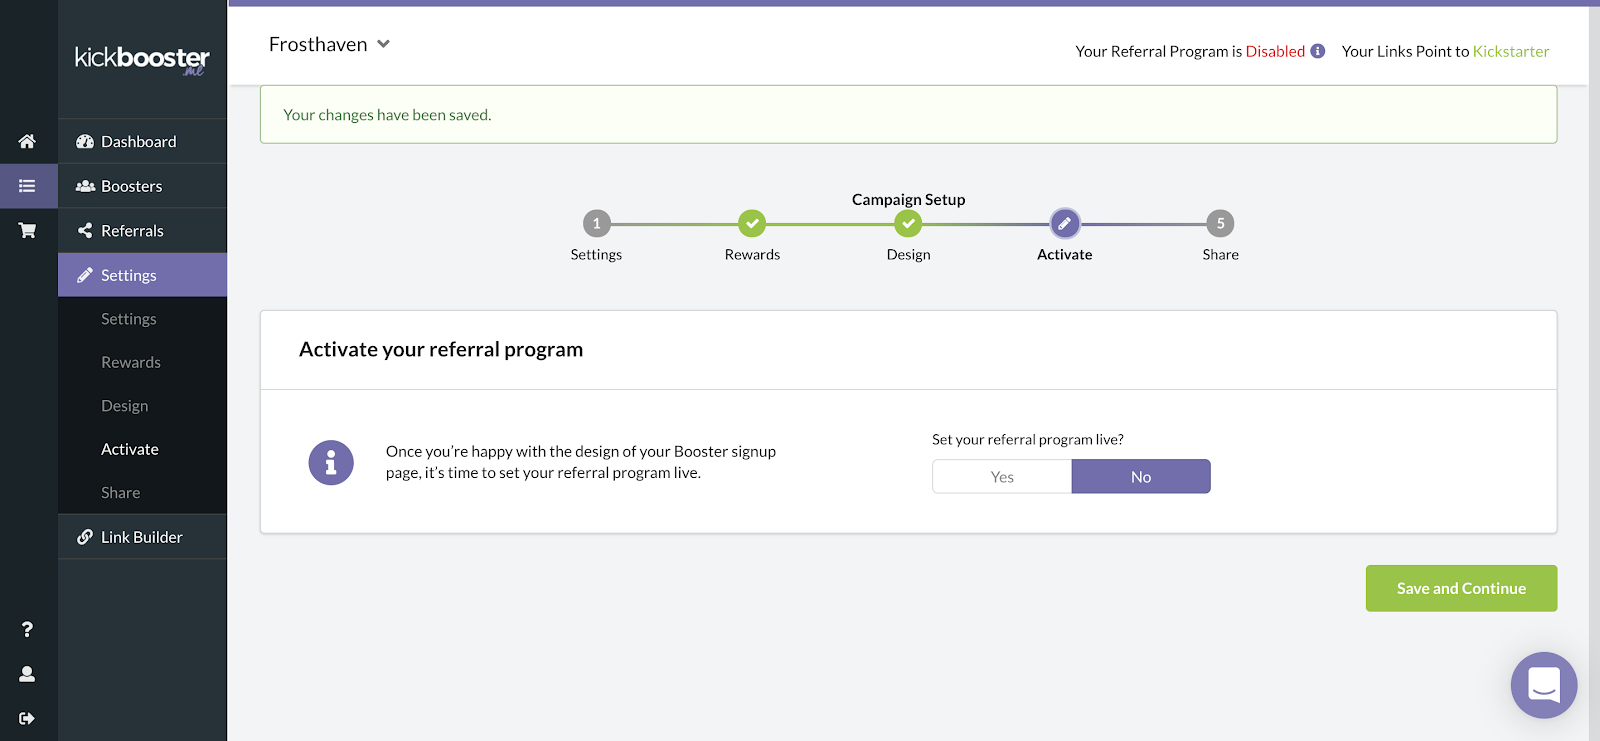 kickbooster reivew how to activate your referral program